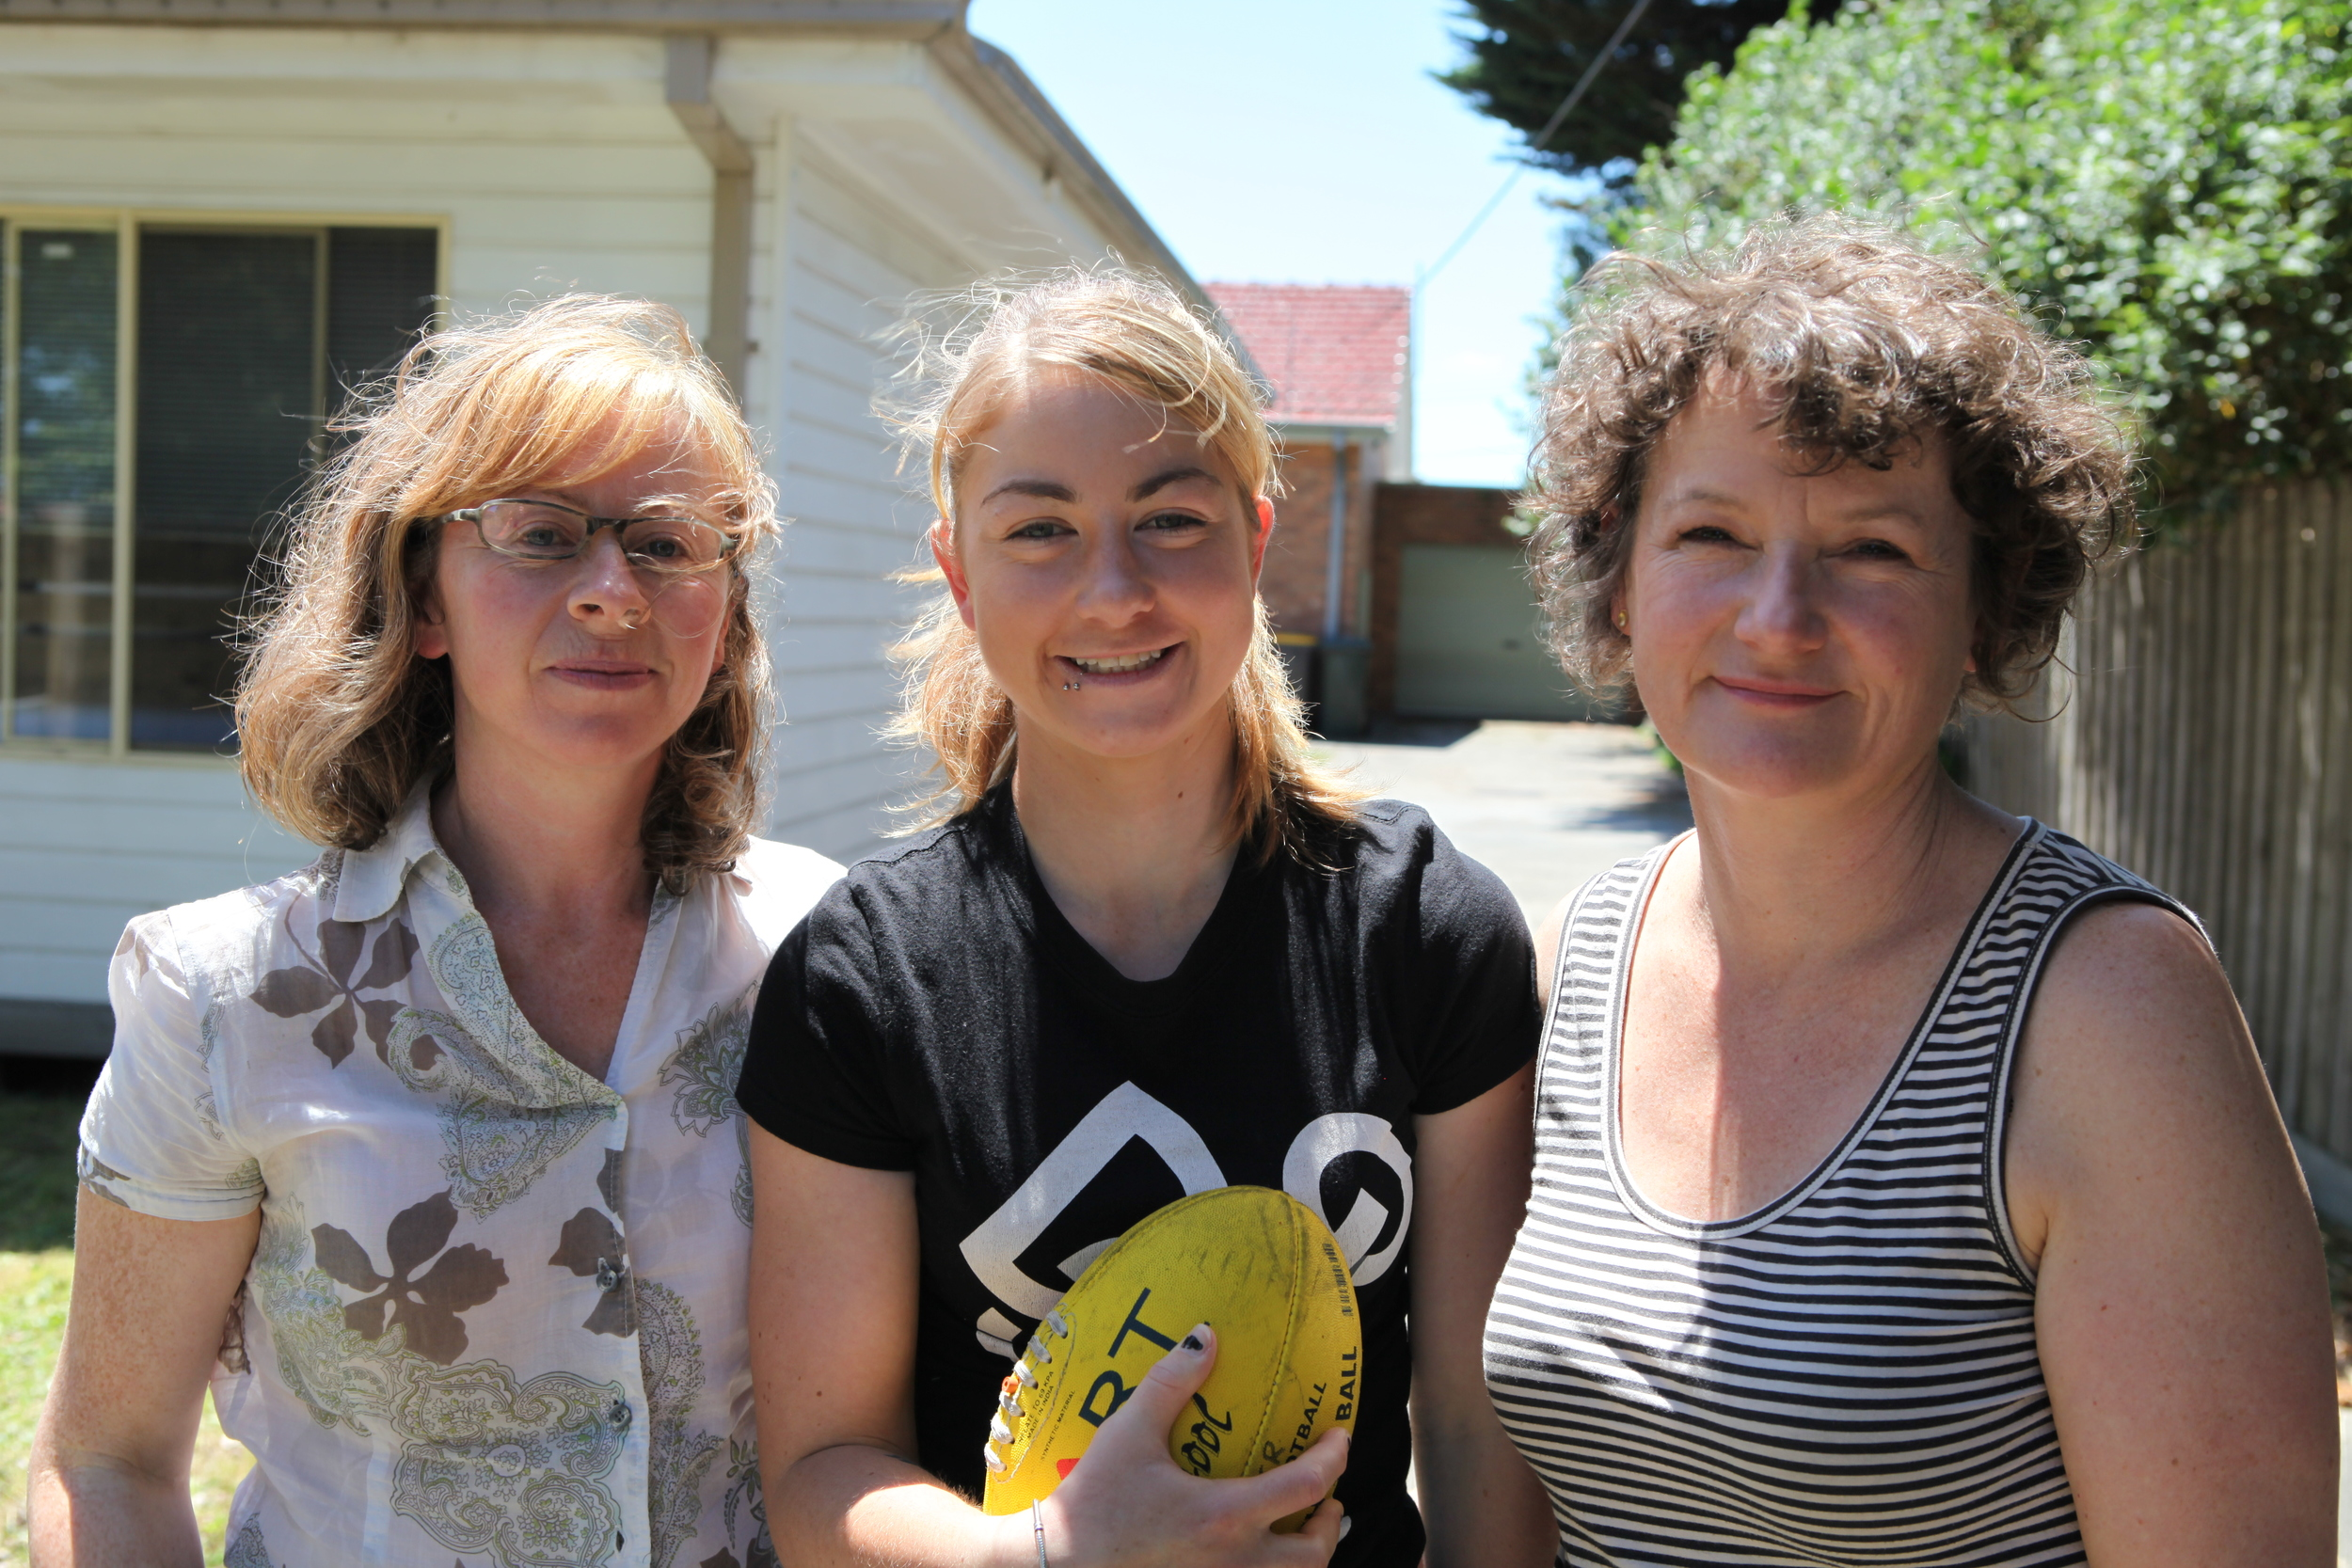 Even Girls Play Footy - Producer Carmel Mcaloon, Penny Cula-Reid and Director Kerreen Ely-Harper today.